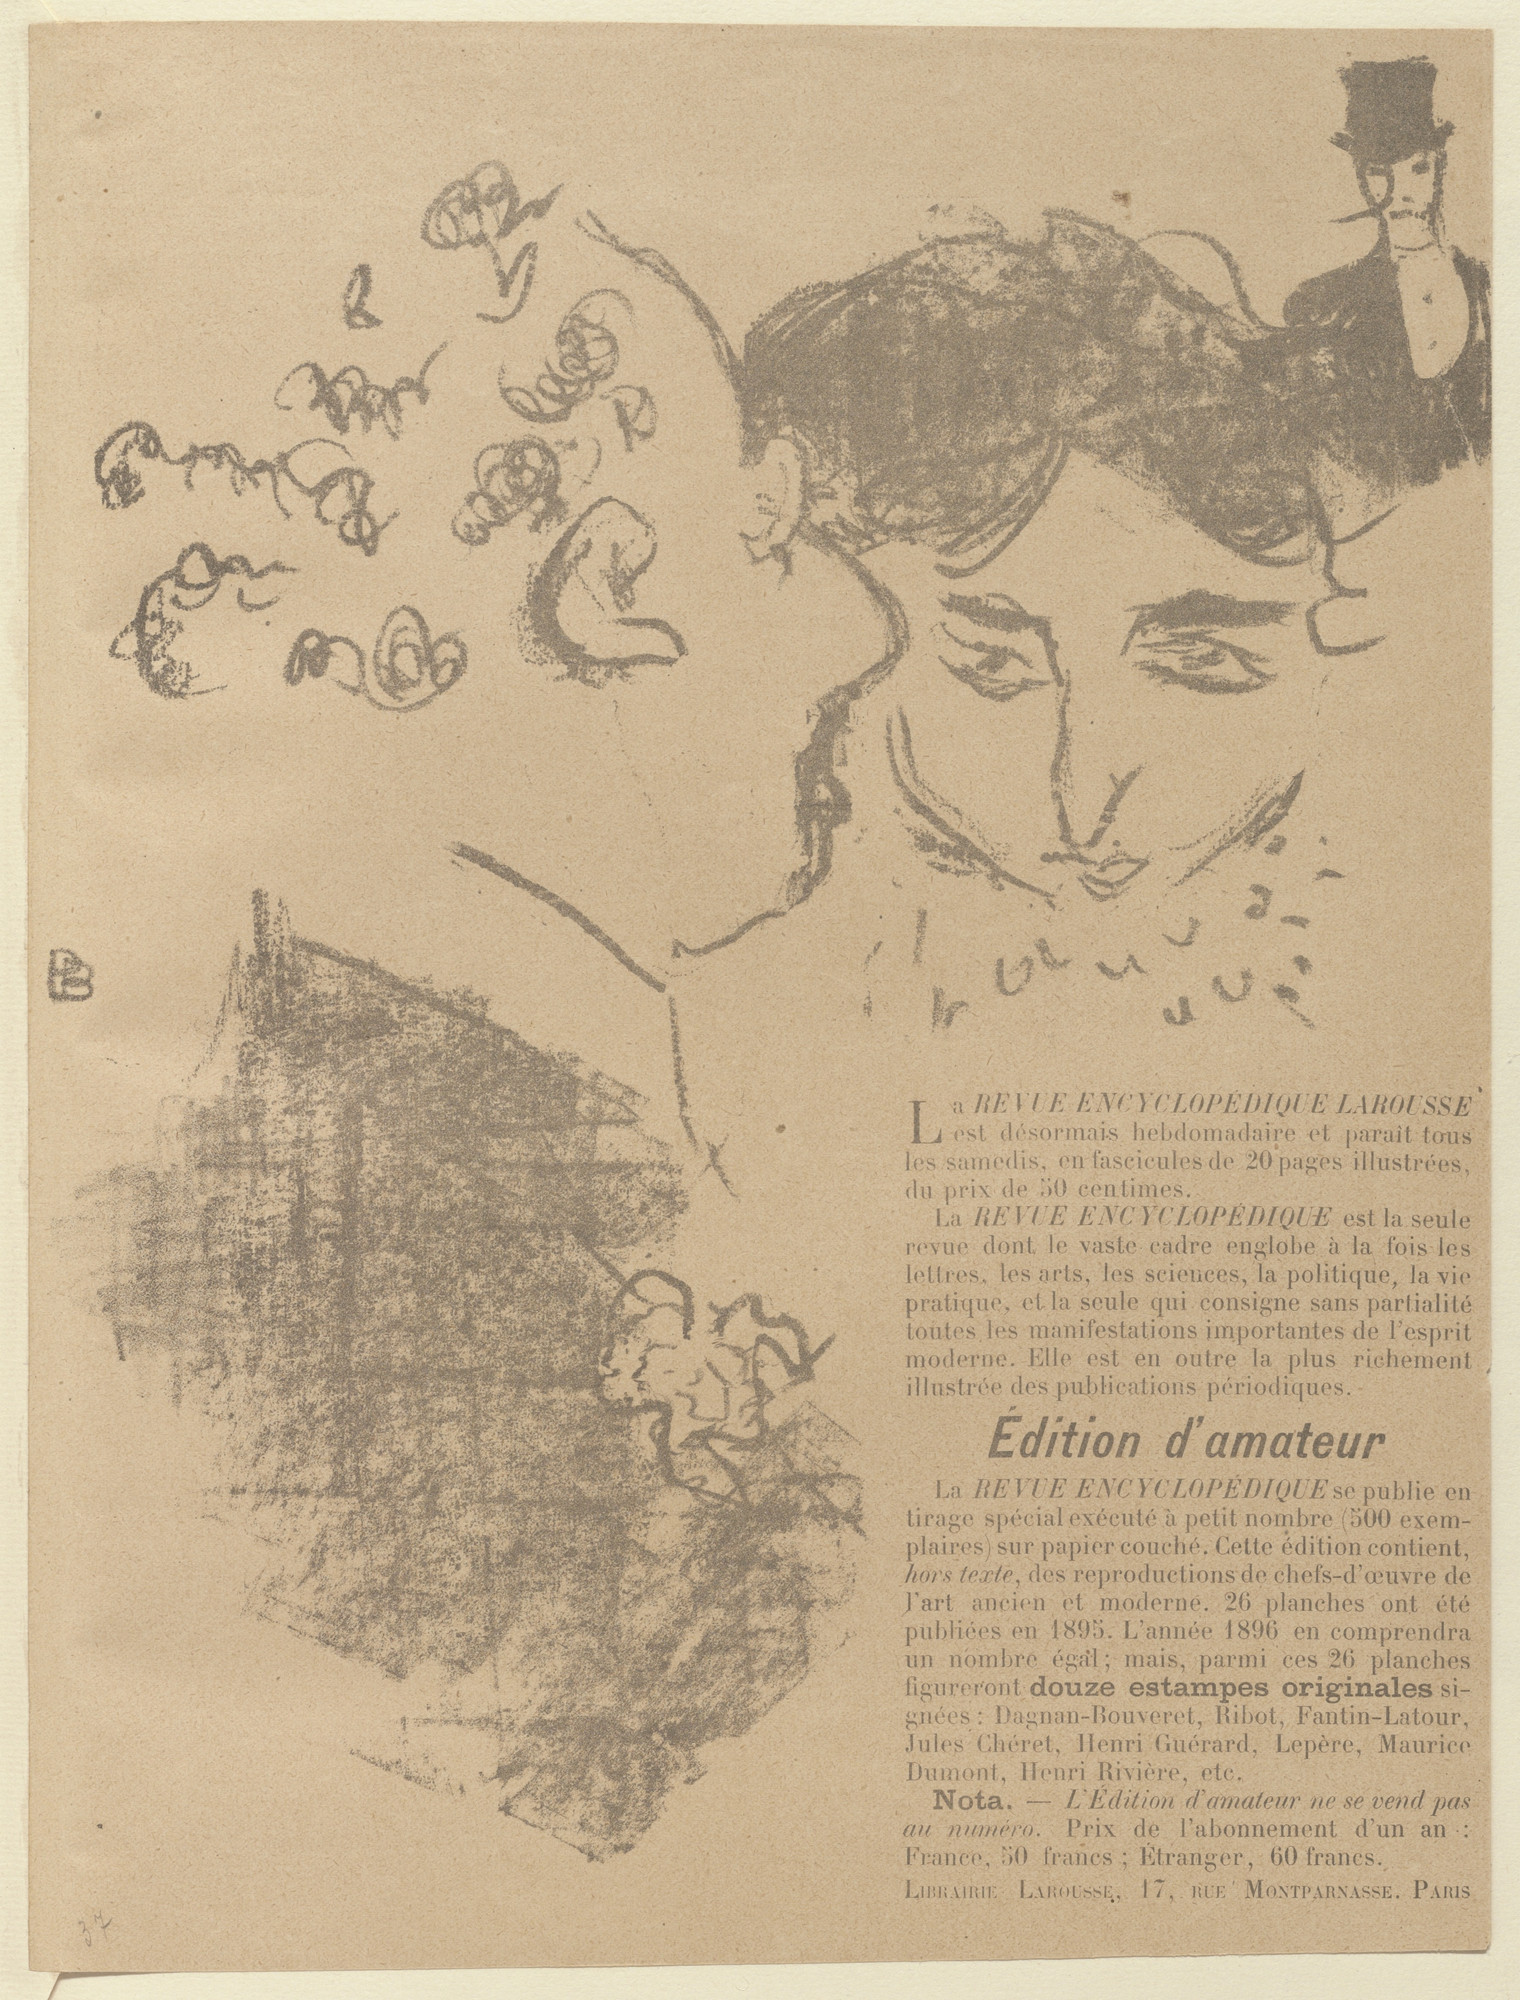 Pierre Bonnard. Advertisement for Revue encyclopédique Larousse from The Beraldi Album of Theatre Programs. 1896